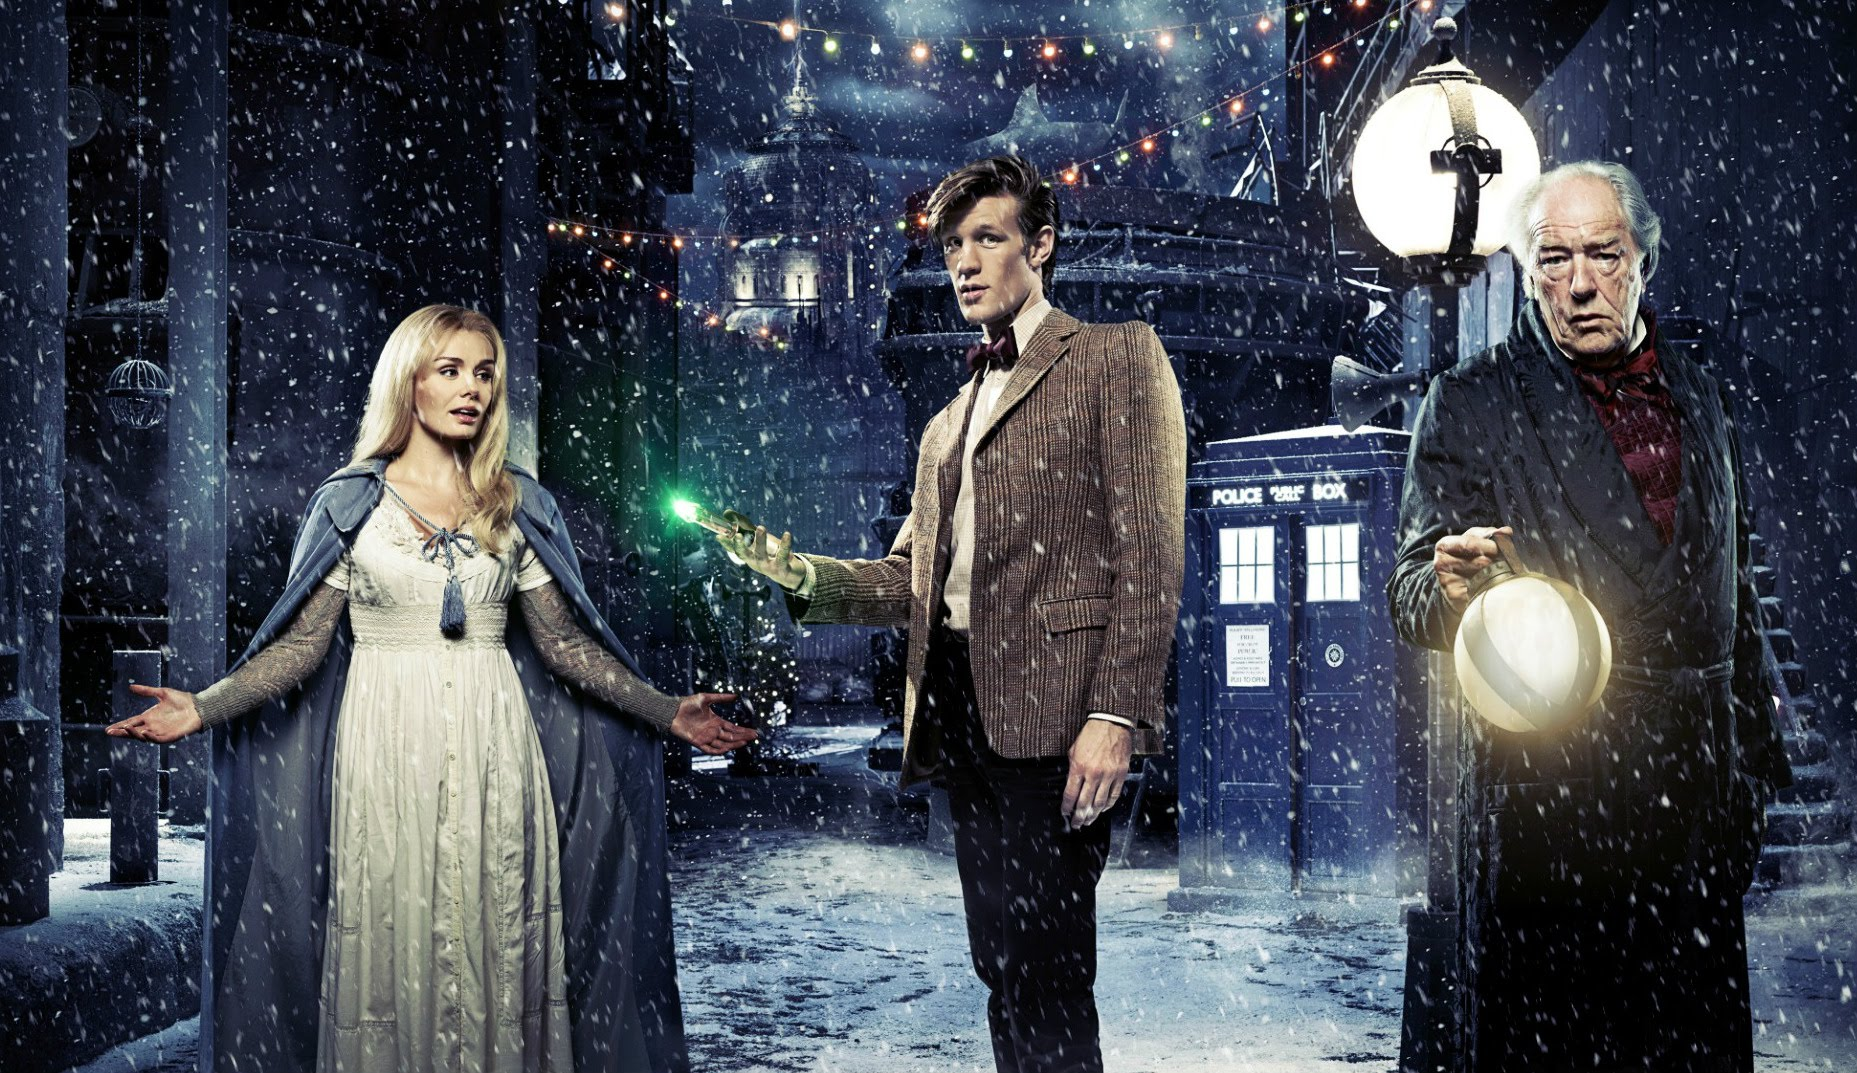 Dr Who Christmas Special.Doctor Who Christmas Special Ranking Every Single